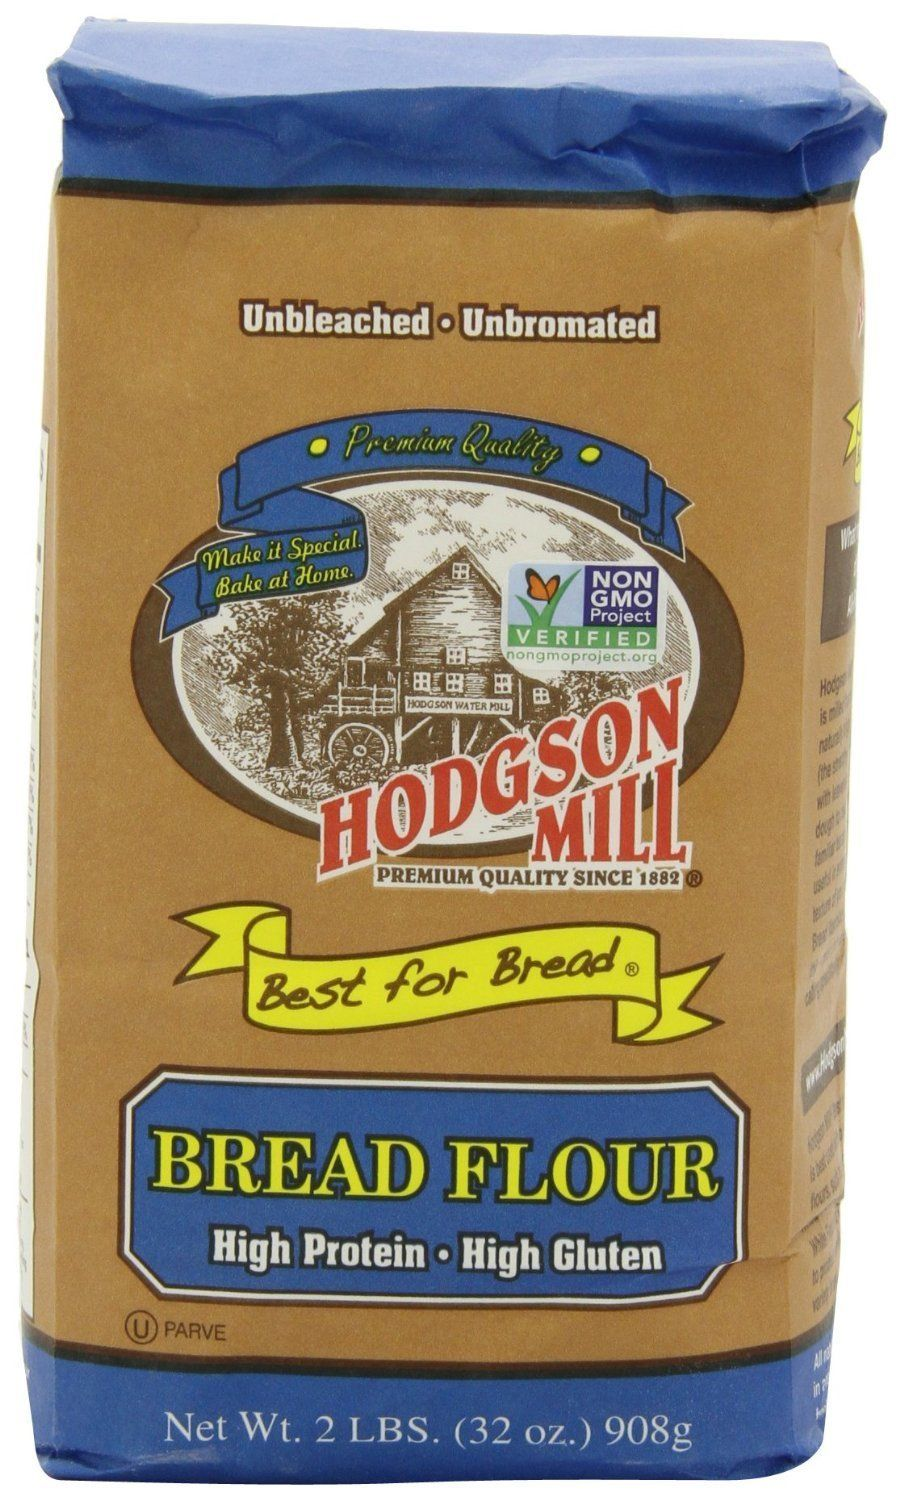 Your Definitive Guide To Flour For All Your Baking Needs